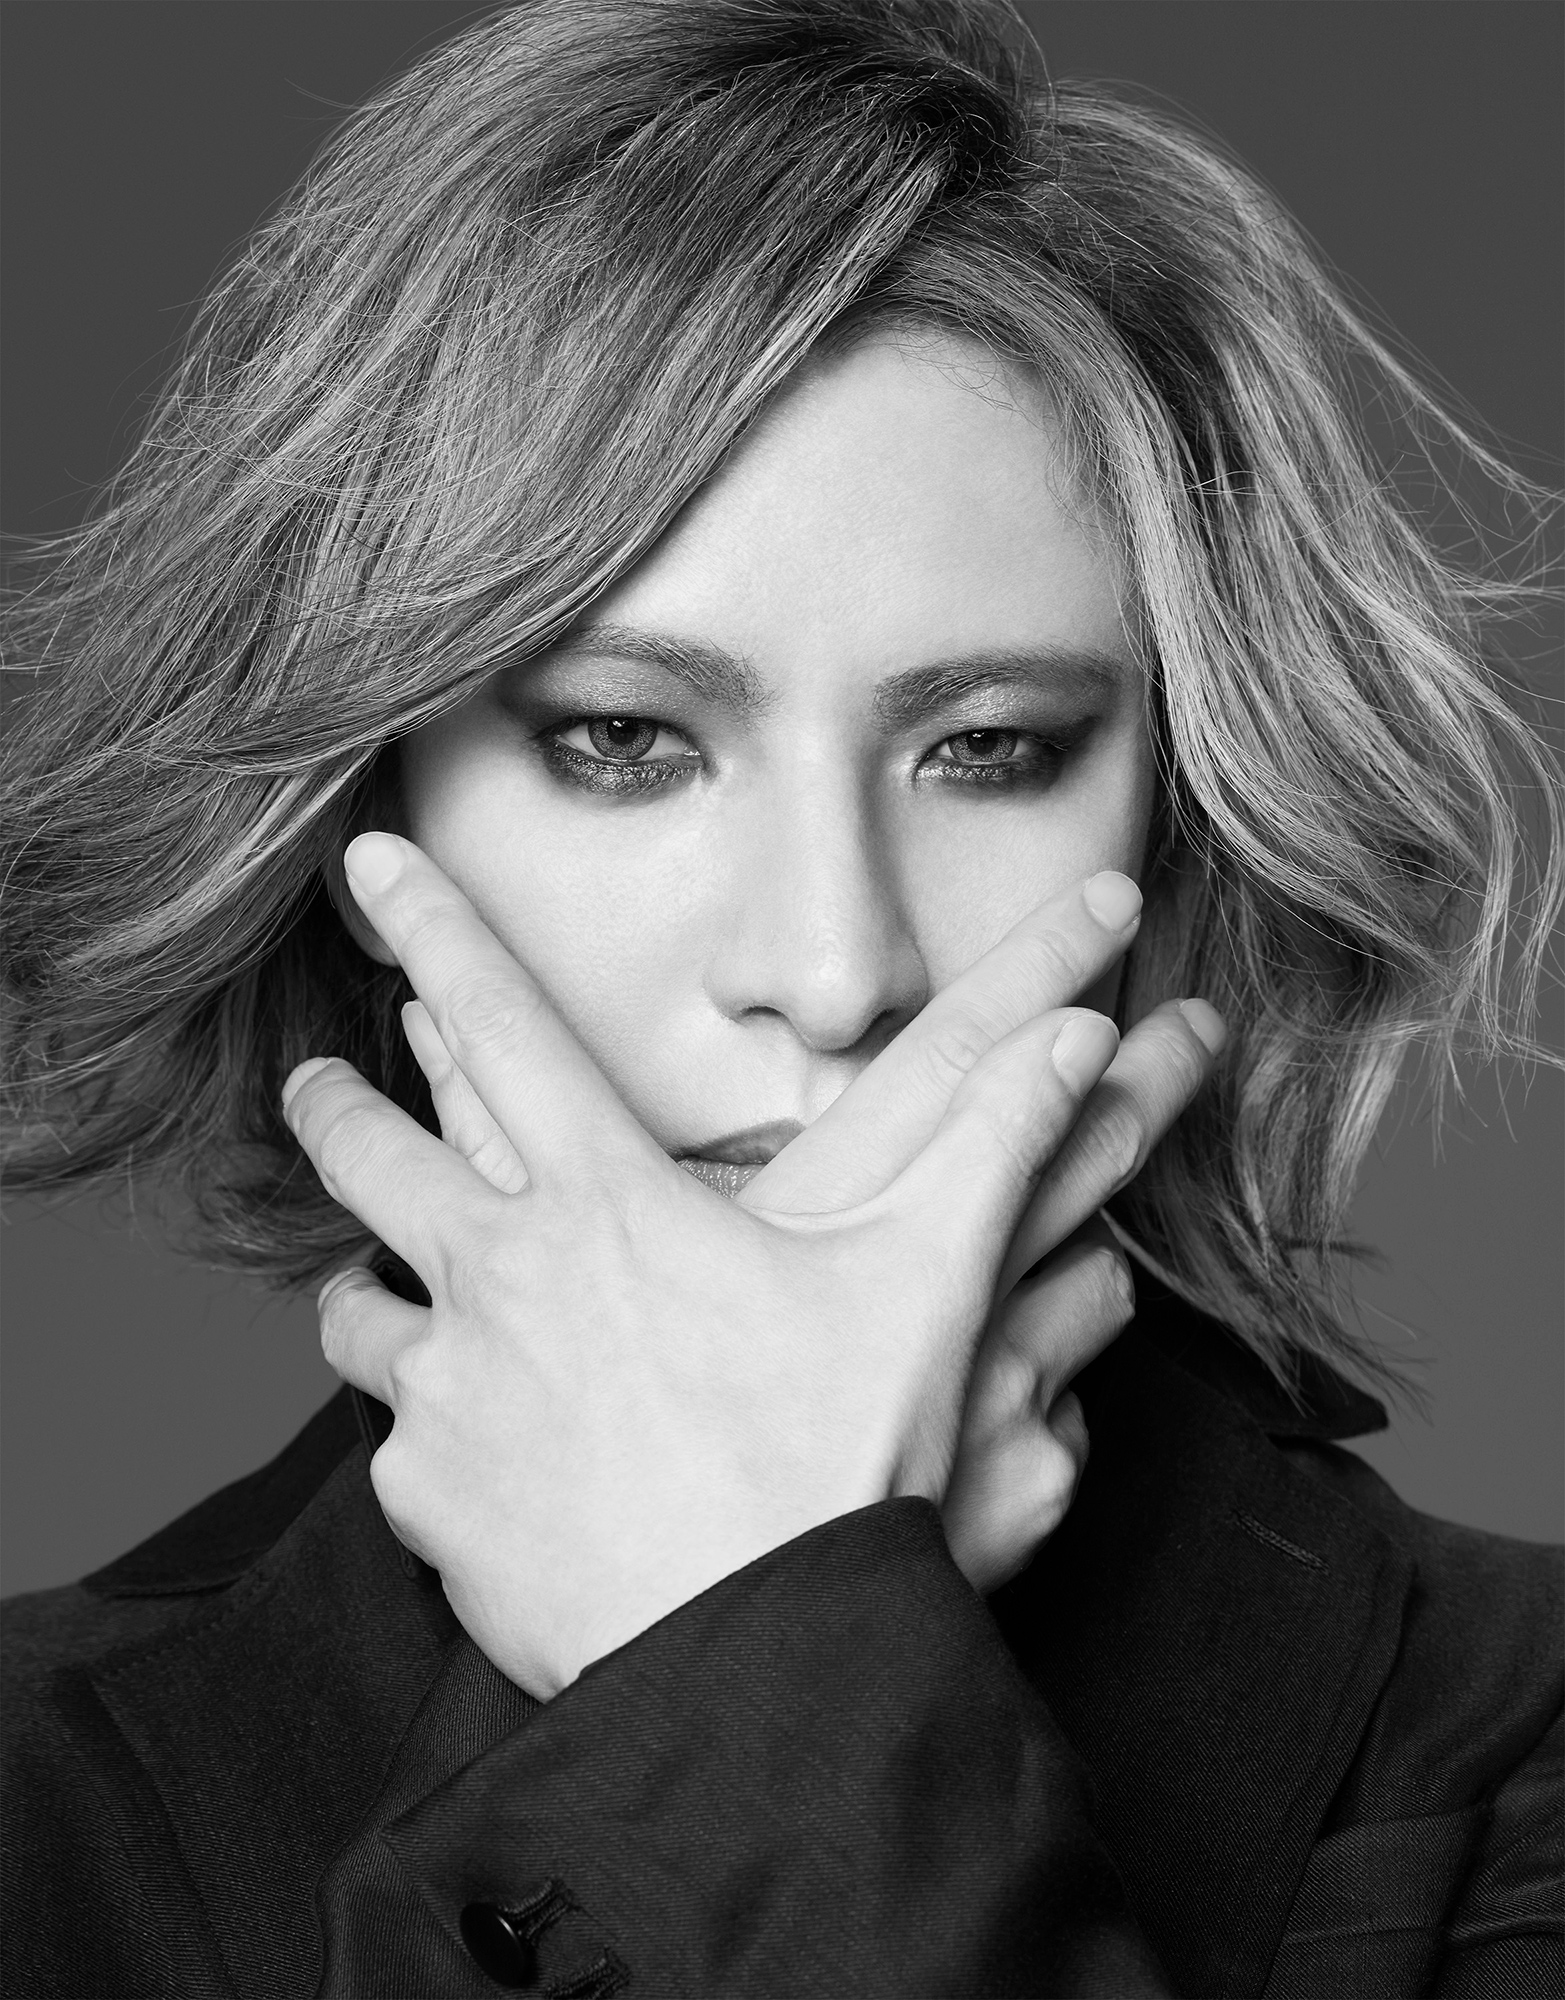 Japanese rock star YOSHIKI donates $100,000 to Earth Alliance to prevent destruction of Amazon Rainforest